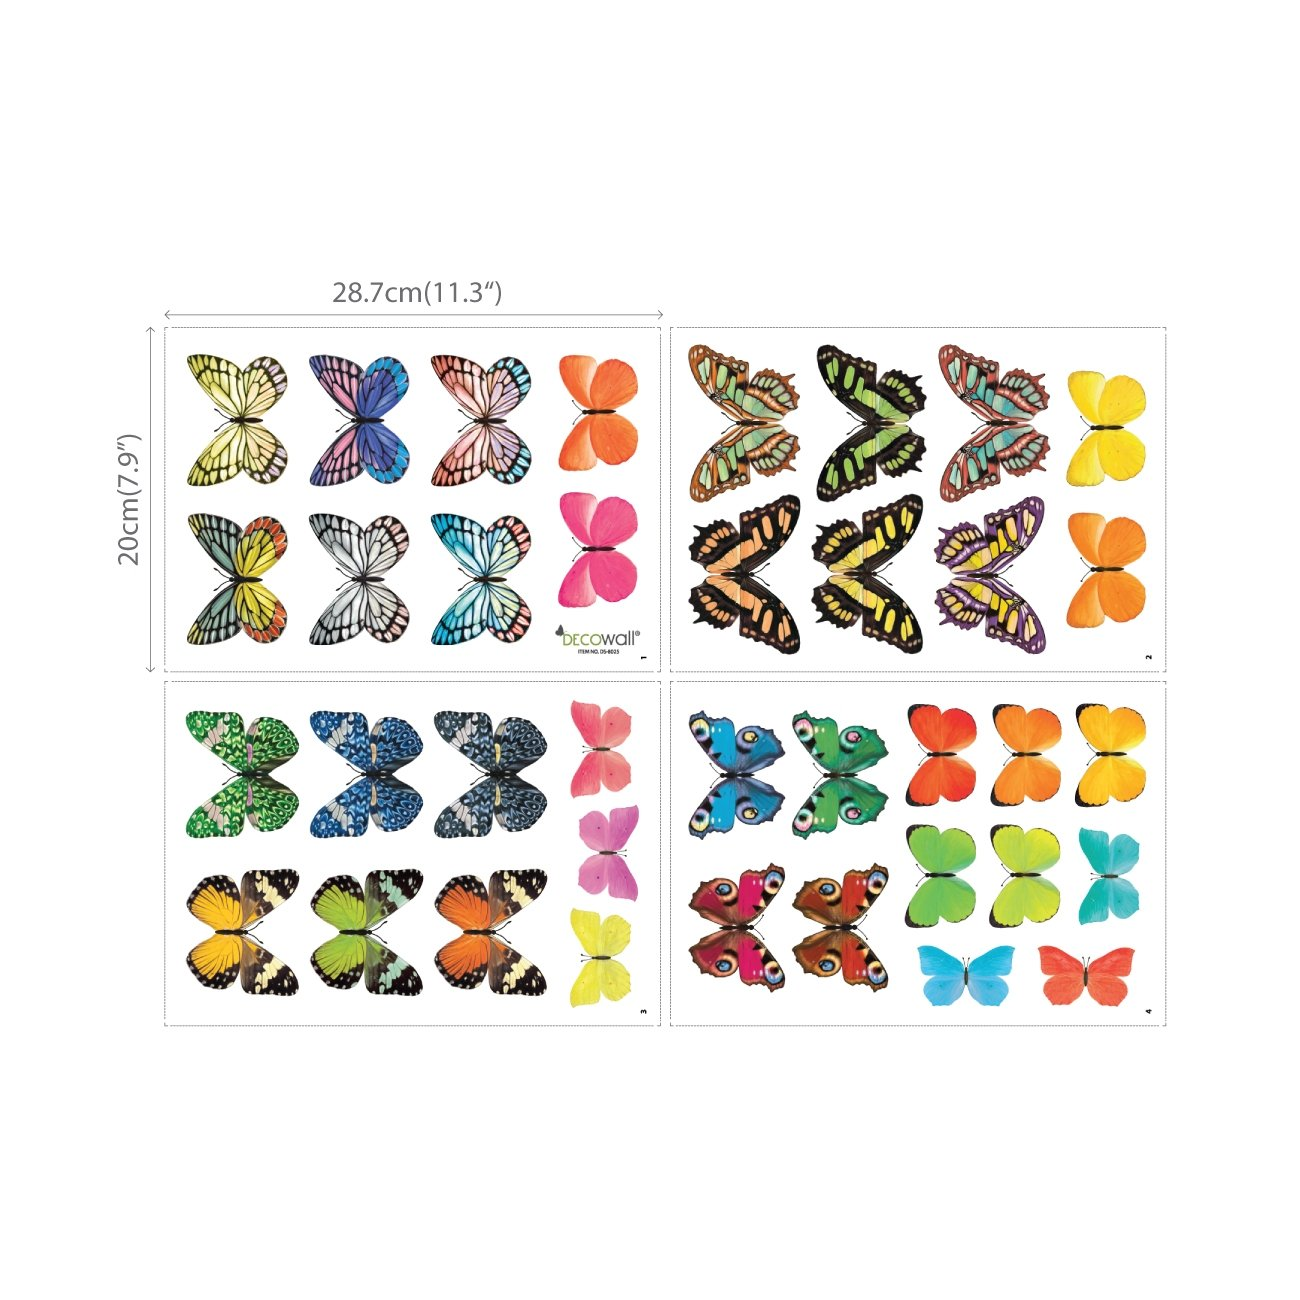 Decowall DA-1705 Vivid Butterflies Kids Wall Decals Wall Stickers Peel and Stick Removable Wall Stickers for Kids Nursery Bedroom Living Room